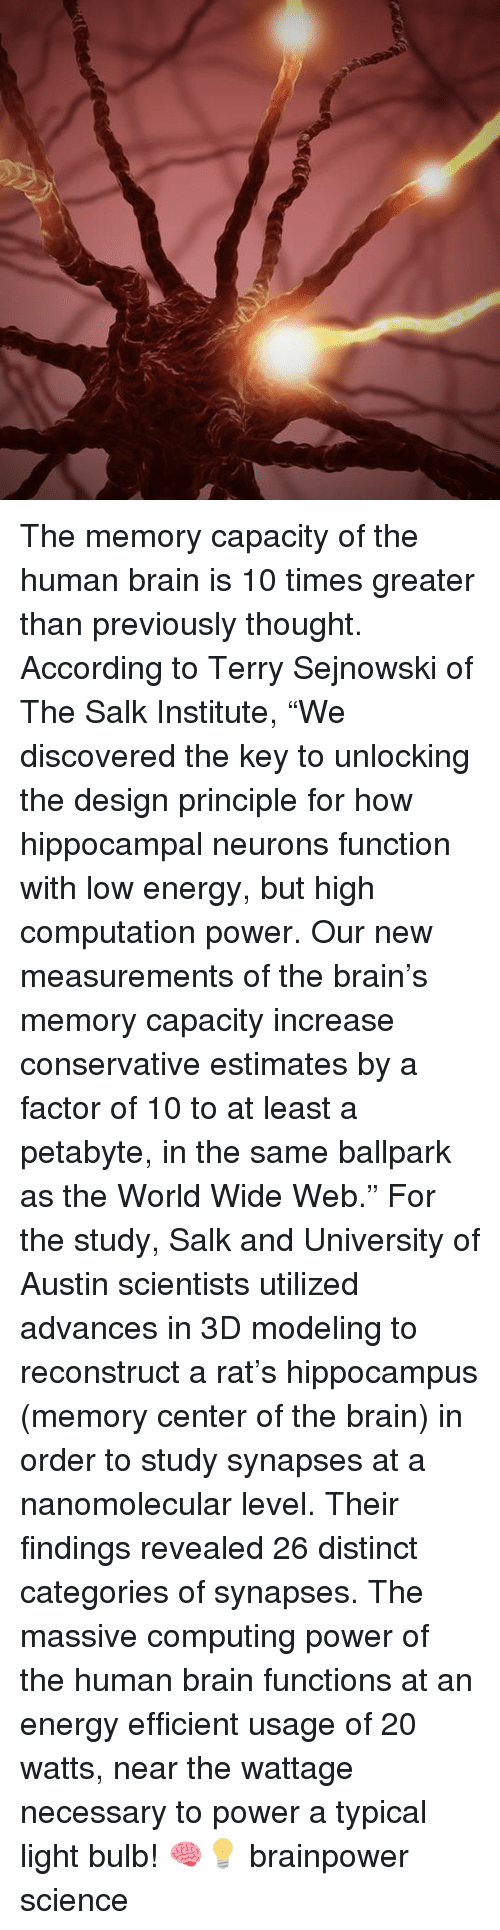 "Energy, Memes, and Brain: The memory capacity of the human brain is 10 times greater than previously thought. According to Terry Sejnowski of The Salk Institute, ""We discovered the key to unlocking the design principle for how hippocampal neurons function with low energy, but high computation power. Our new measurements of the brain's memory capacity increase conservative estimates by a factor of 10 to at least a petabyte, in the same ballpark as the World Wide Web."" For the study, Salk and University of Austin scientists utilized advances in 3D modeling to reconstruct a rat's hippocampus (memory center of the brain) in order to study synapses at a nanomolecular level. Their findings revealed 26 distinct categories of synapses. The massive computing power of the human brain functions at an energy efficient usage of 20 watts, near the wattage necessary to power a typical light bulb! 🧠💡 brainpower science"